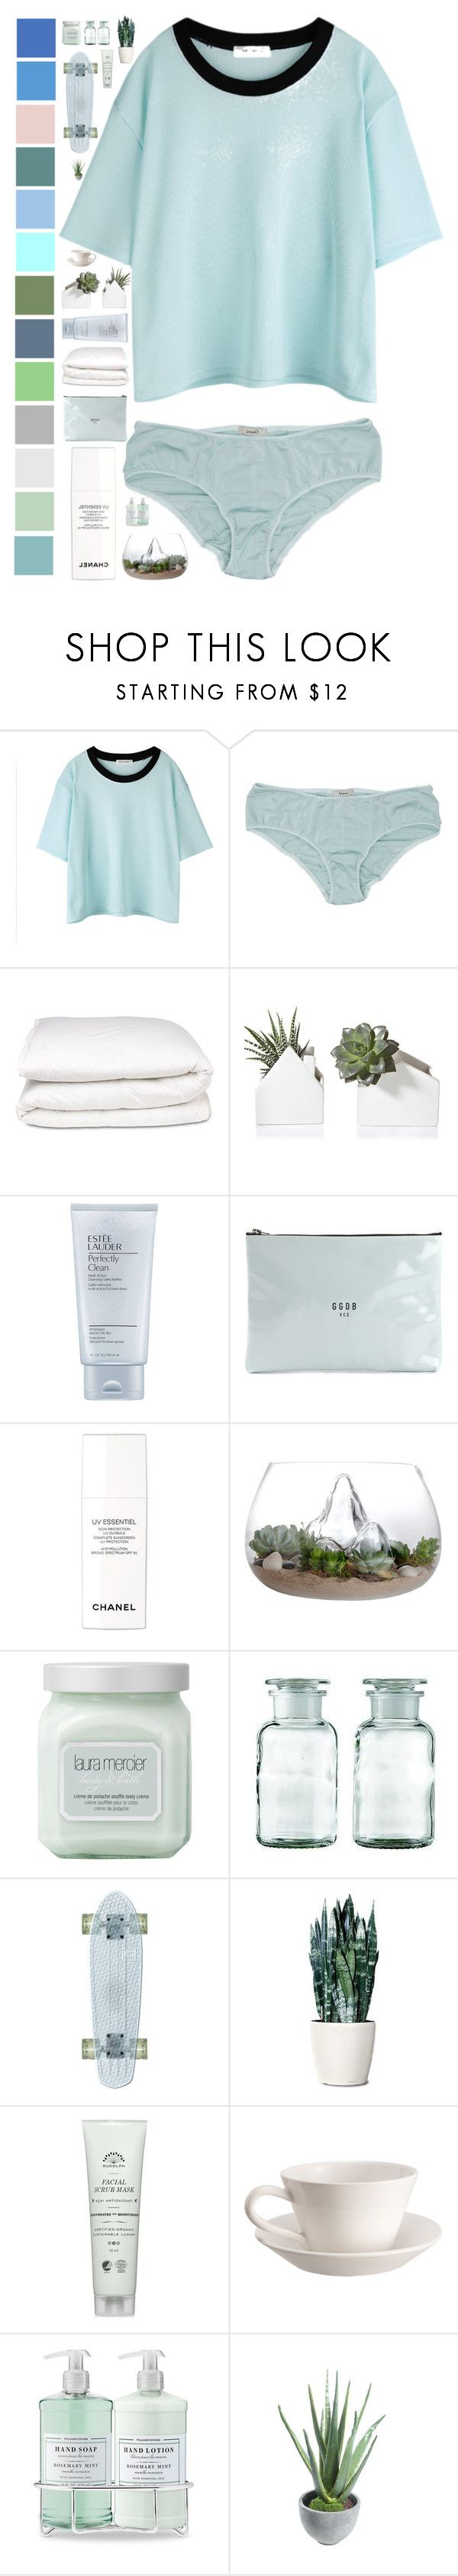 """Untitled #372"" by nicoladaly ❤ liked on Polyvore featuring Ganni, Selfridges, Estée Lauder, Golden Goose, Chanel, Laura Mercier, Bourg-Joly Malicorne, Williams-Sonoma and Alöe"